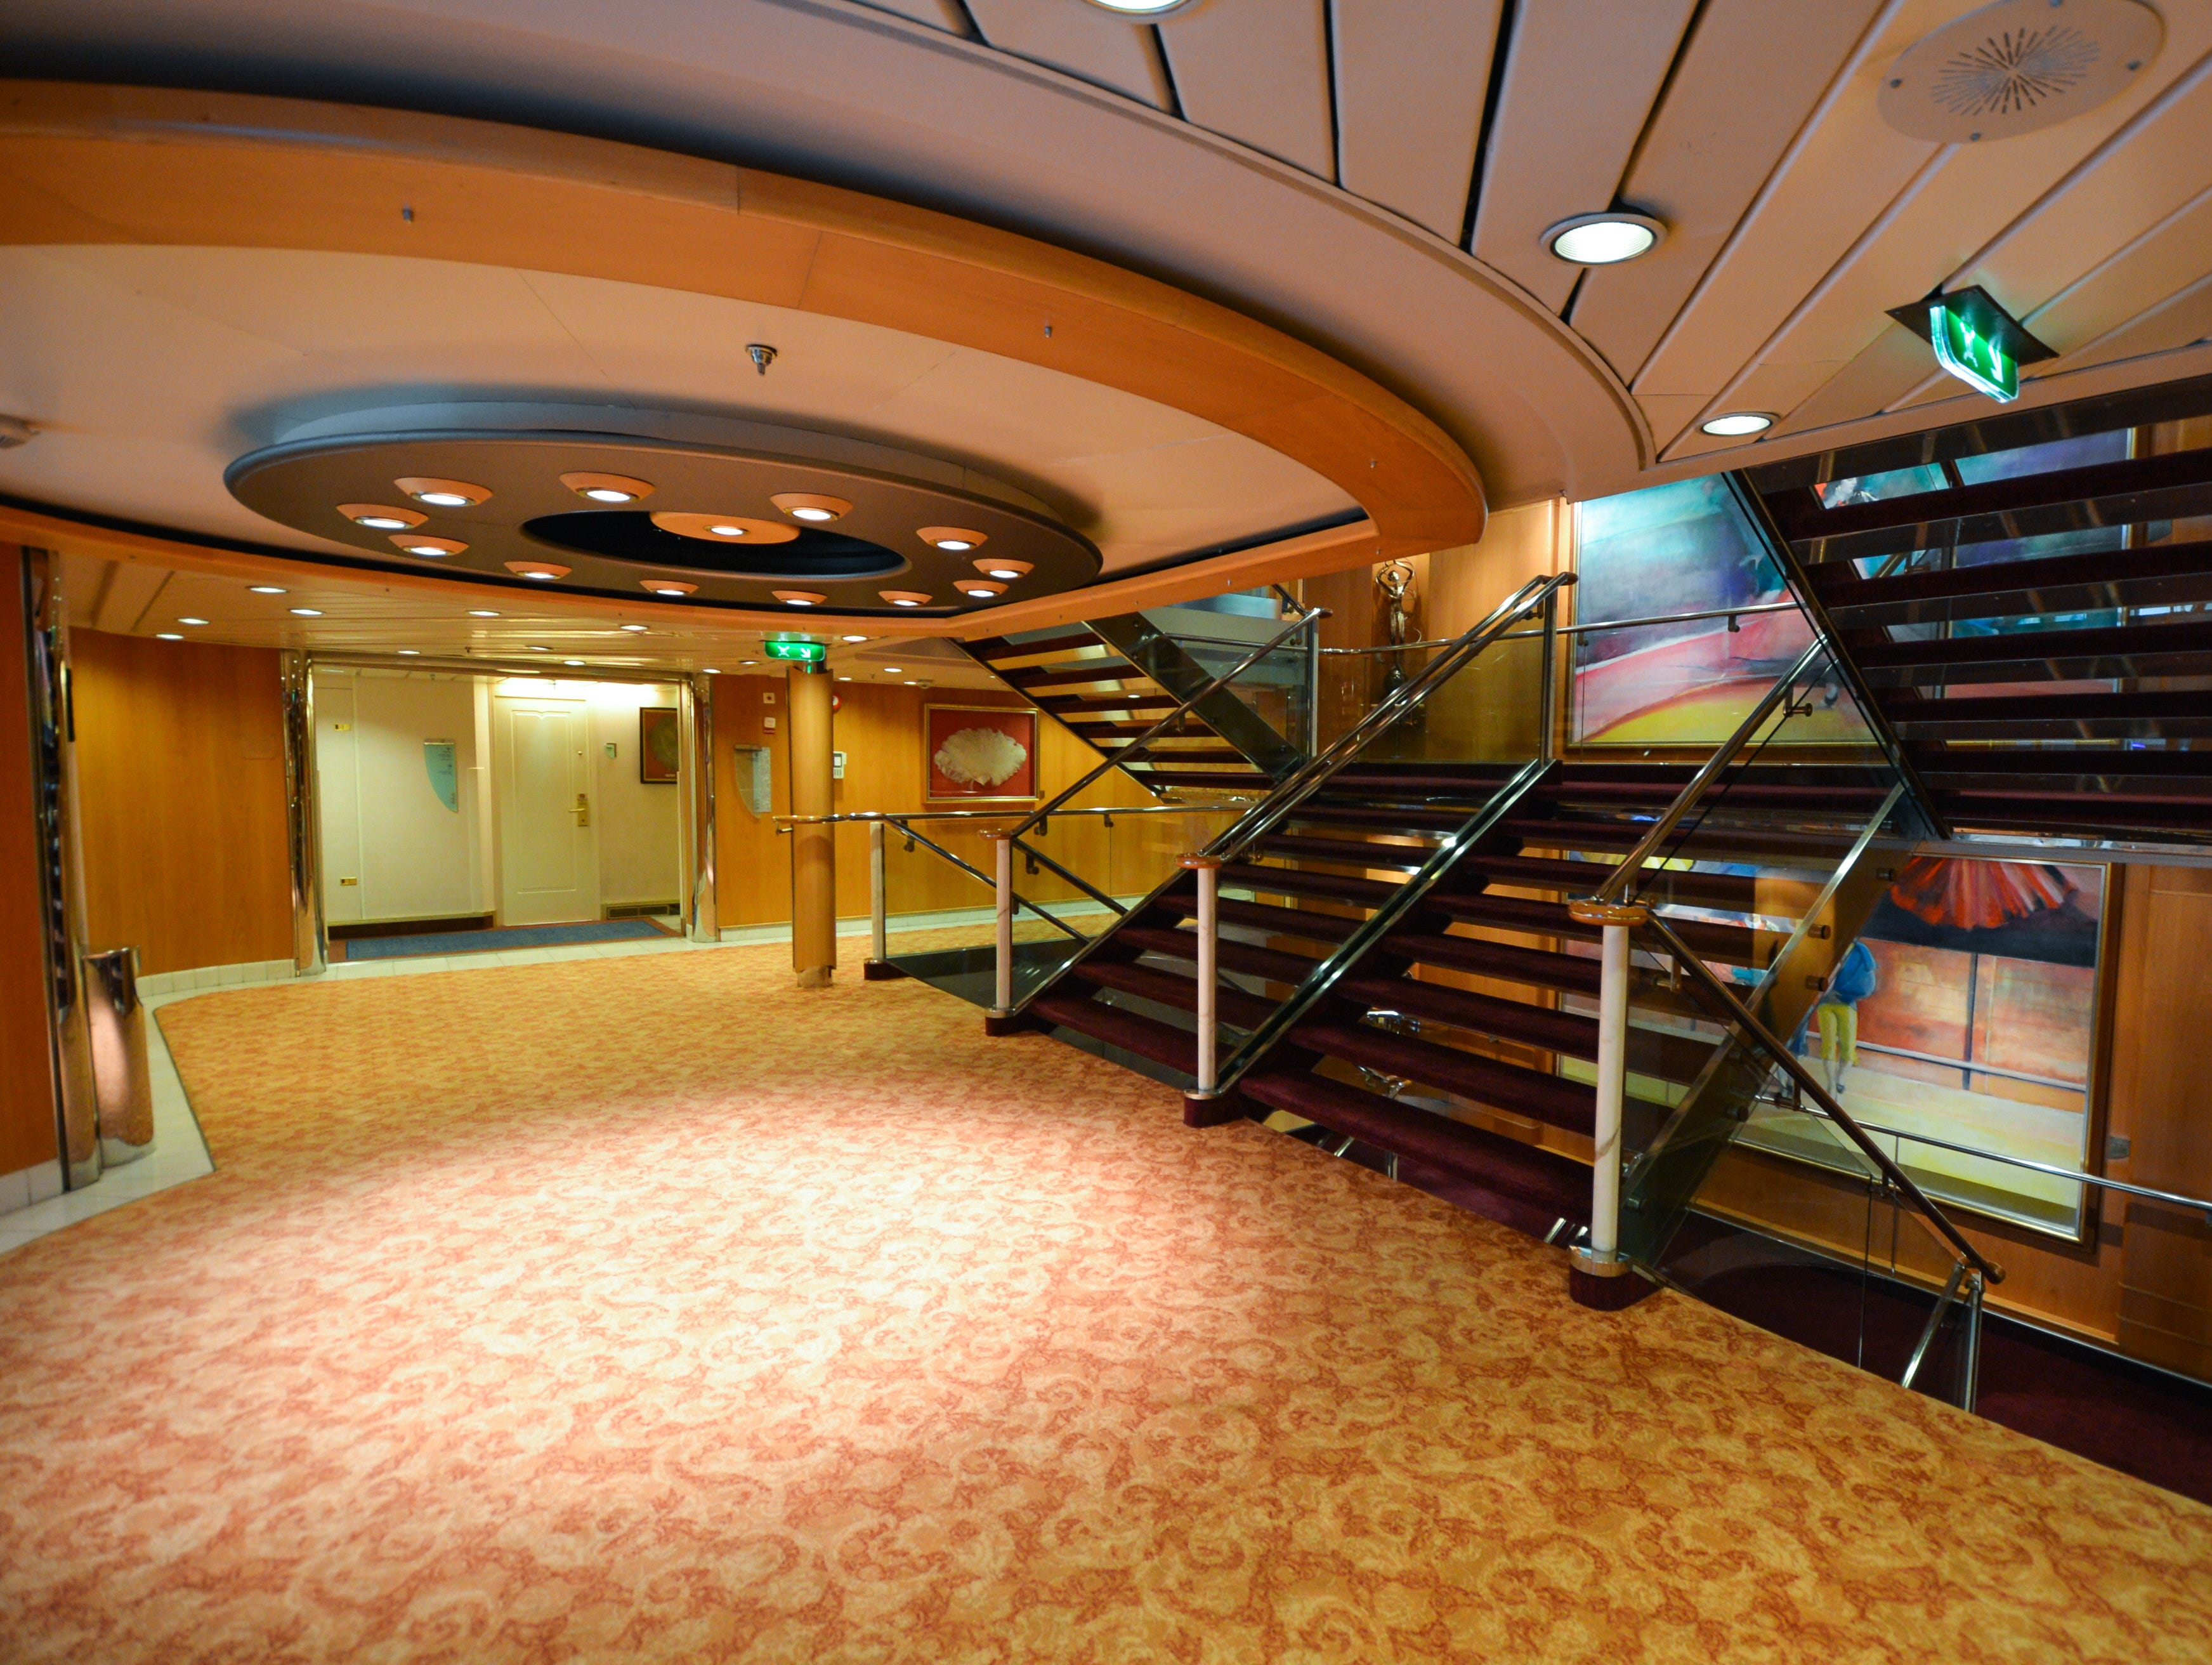 The 2012 makeover of Grandeur of the Seas brought new decor throughout the ship, including in stairwells.